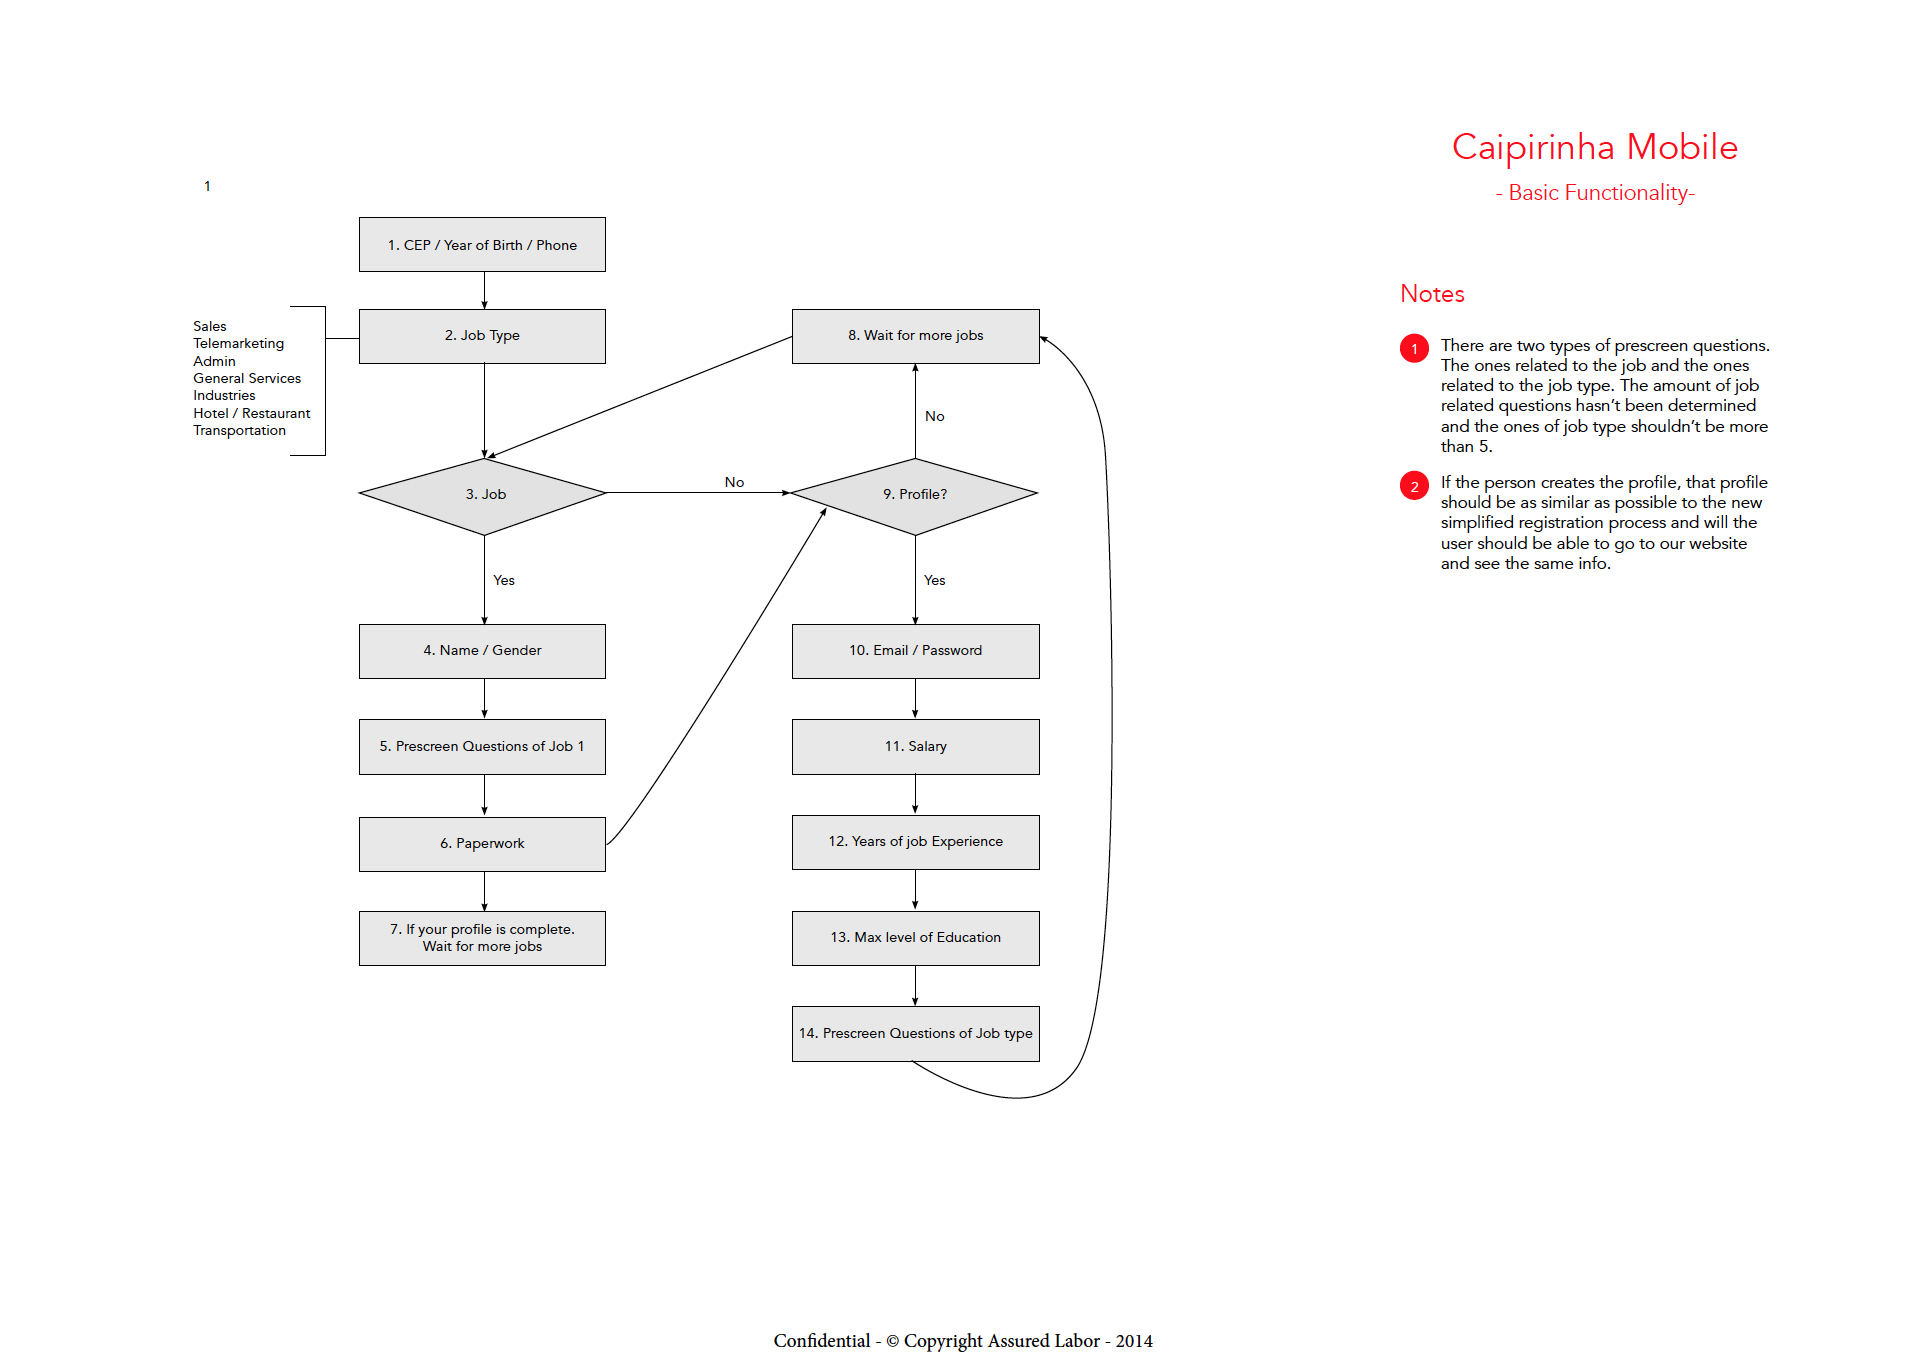 Flow chart of the app